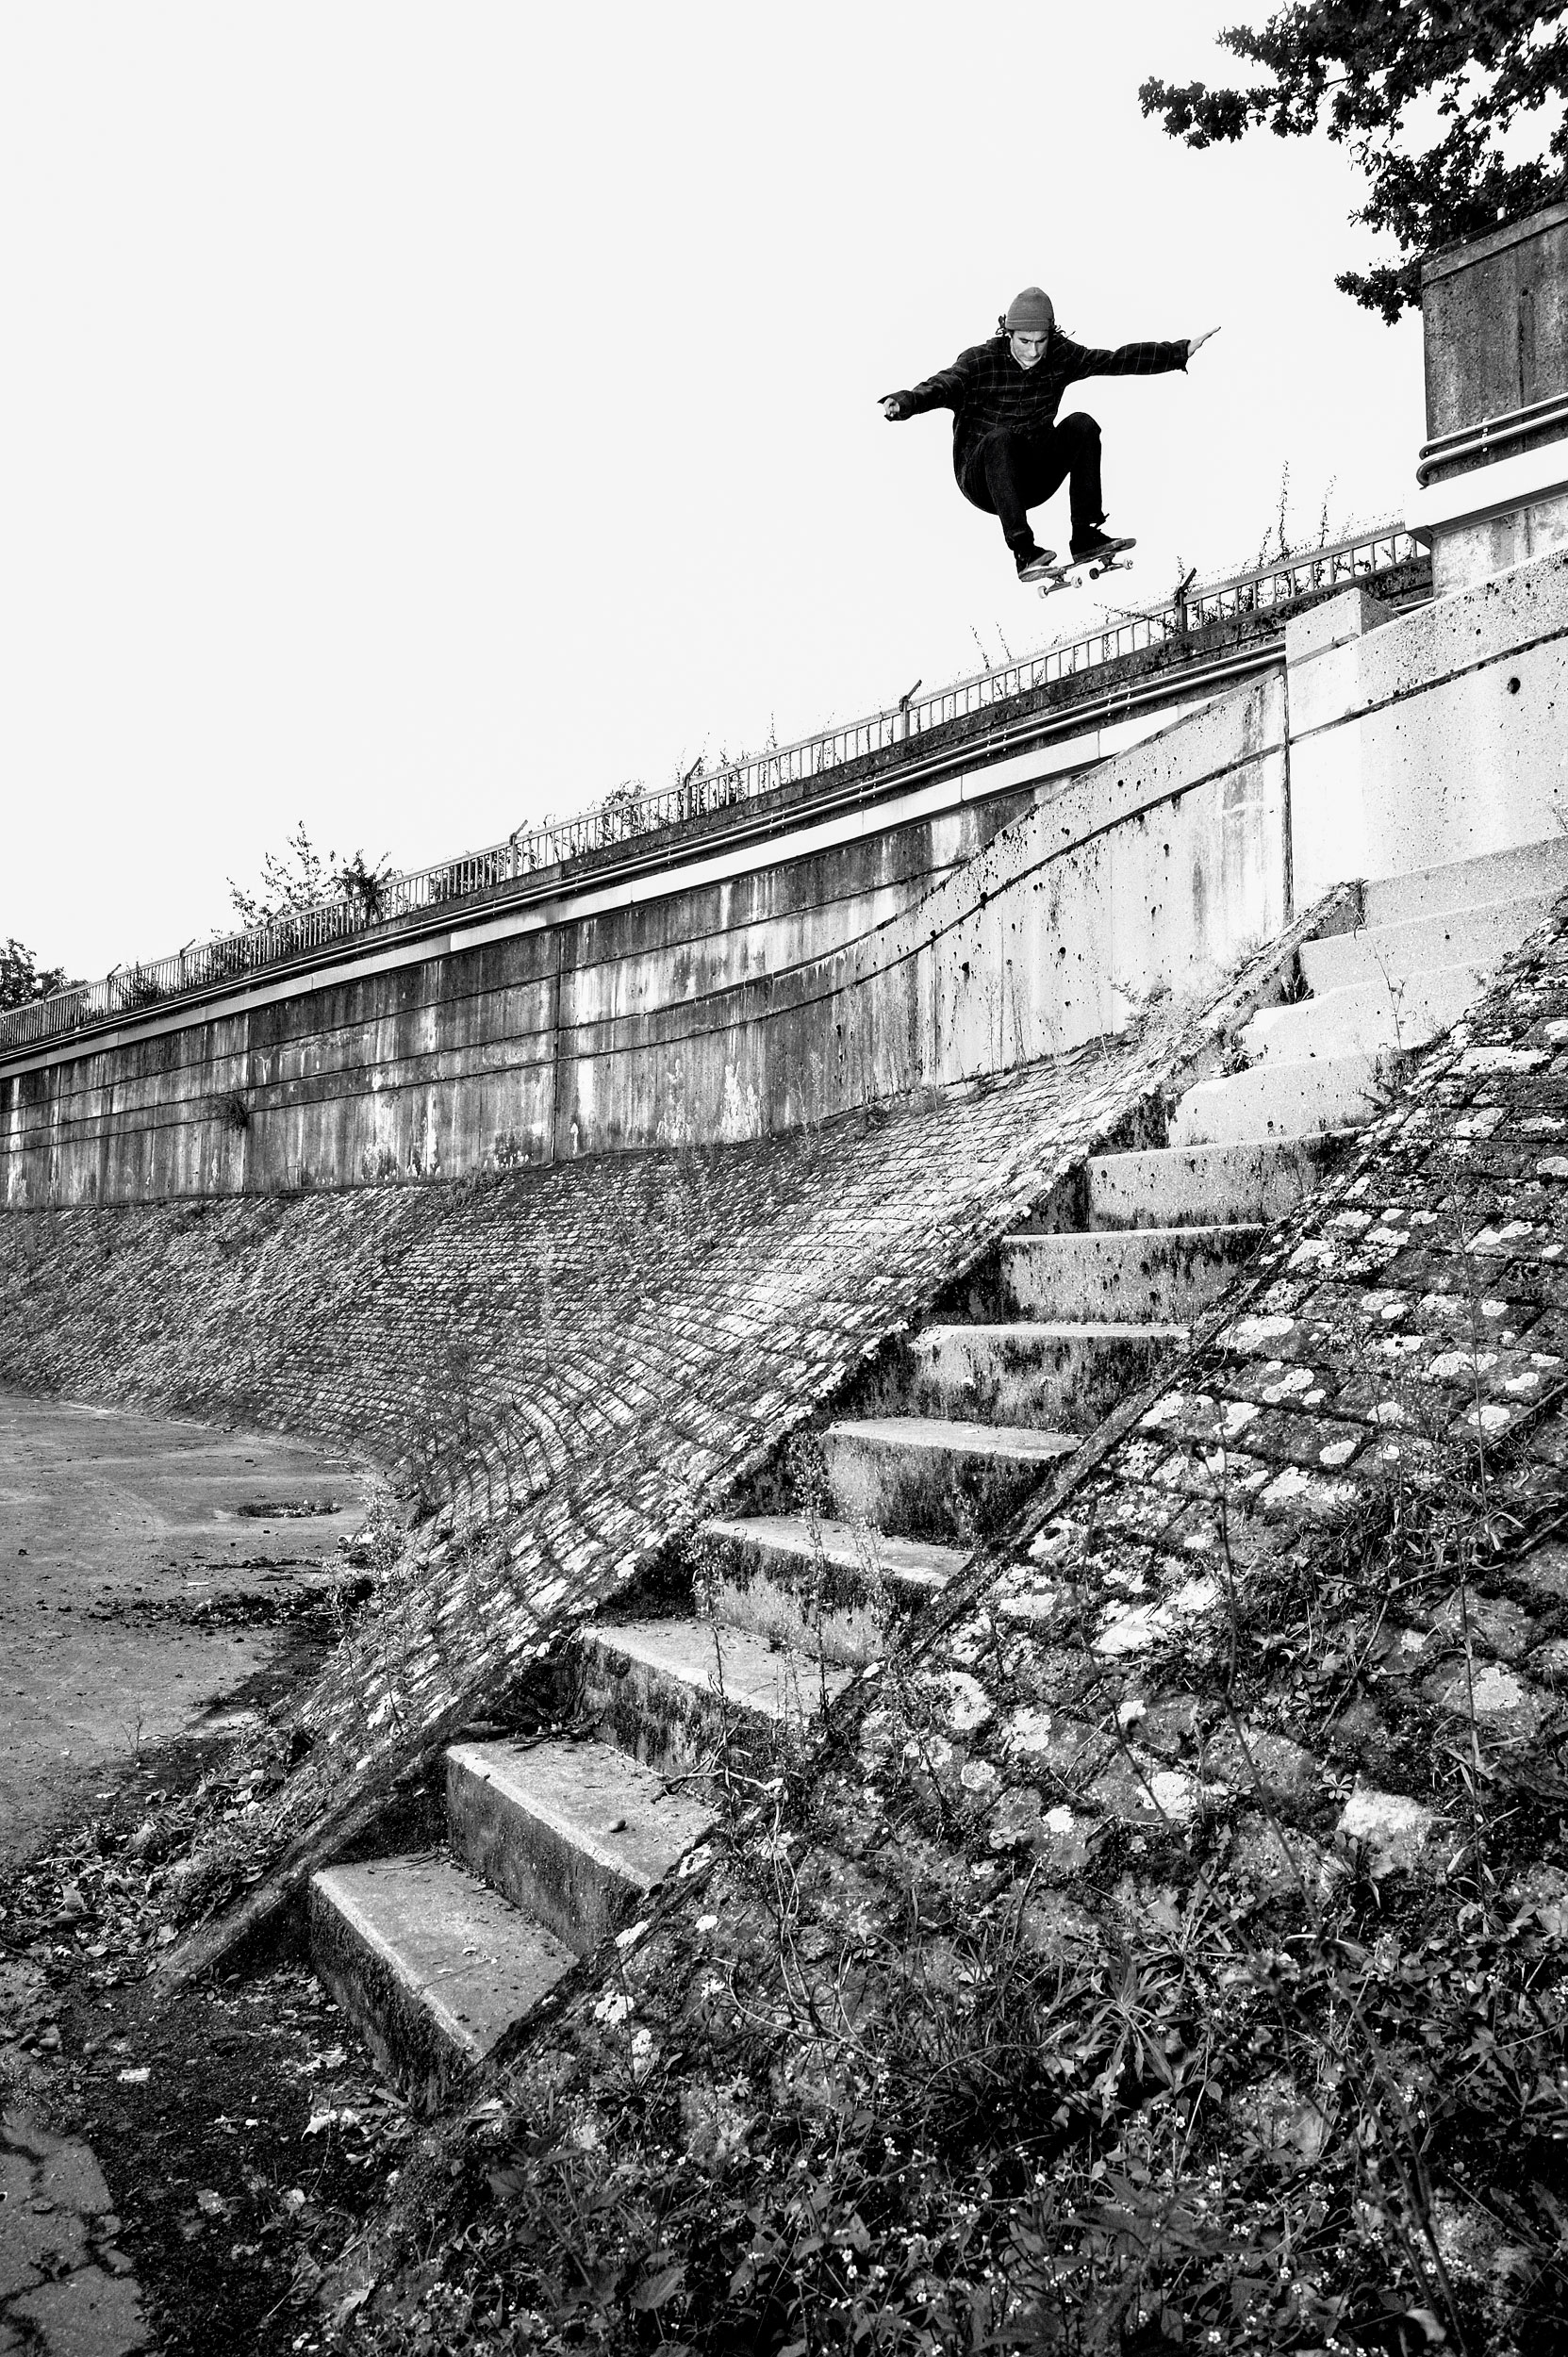 Tom Derichs, Olli, Editorial, Willi Nothers, Carhartt, Vans,